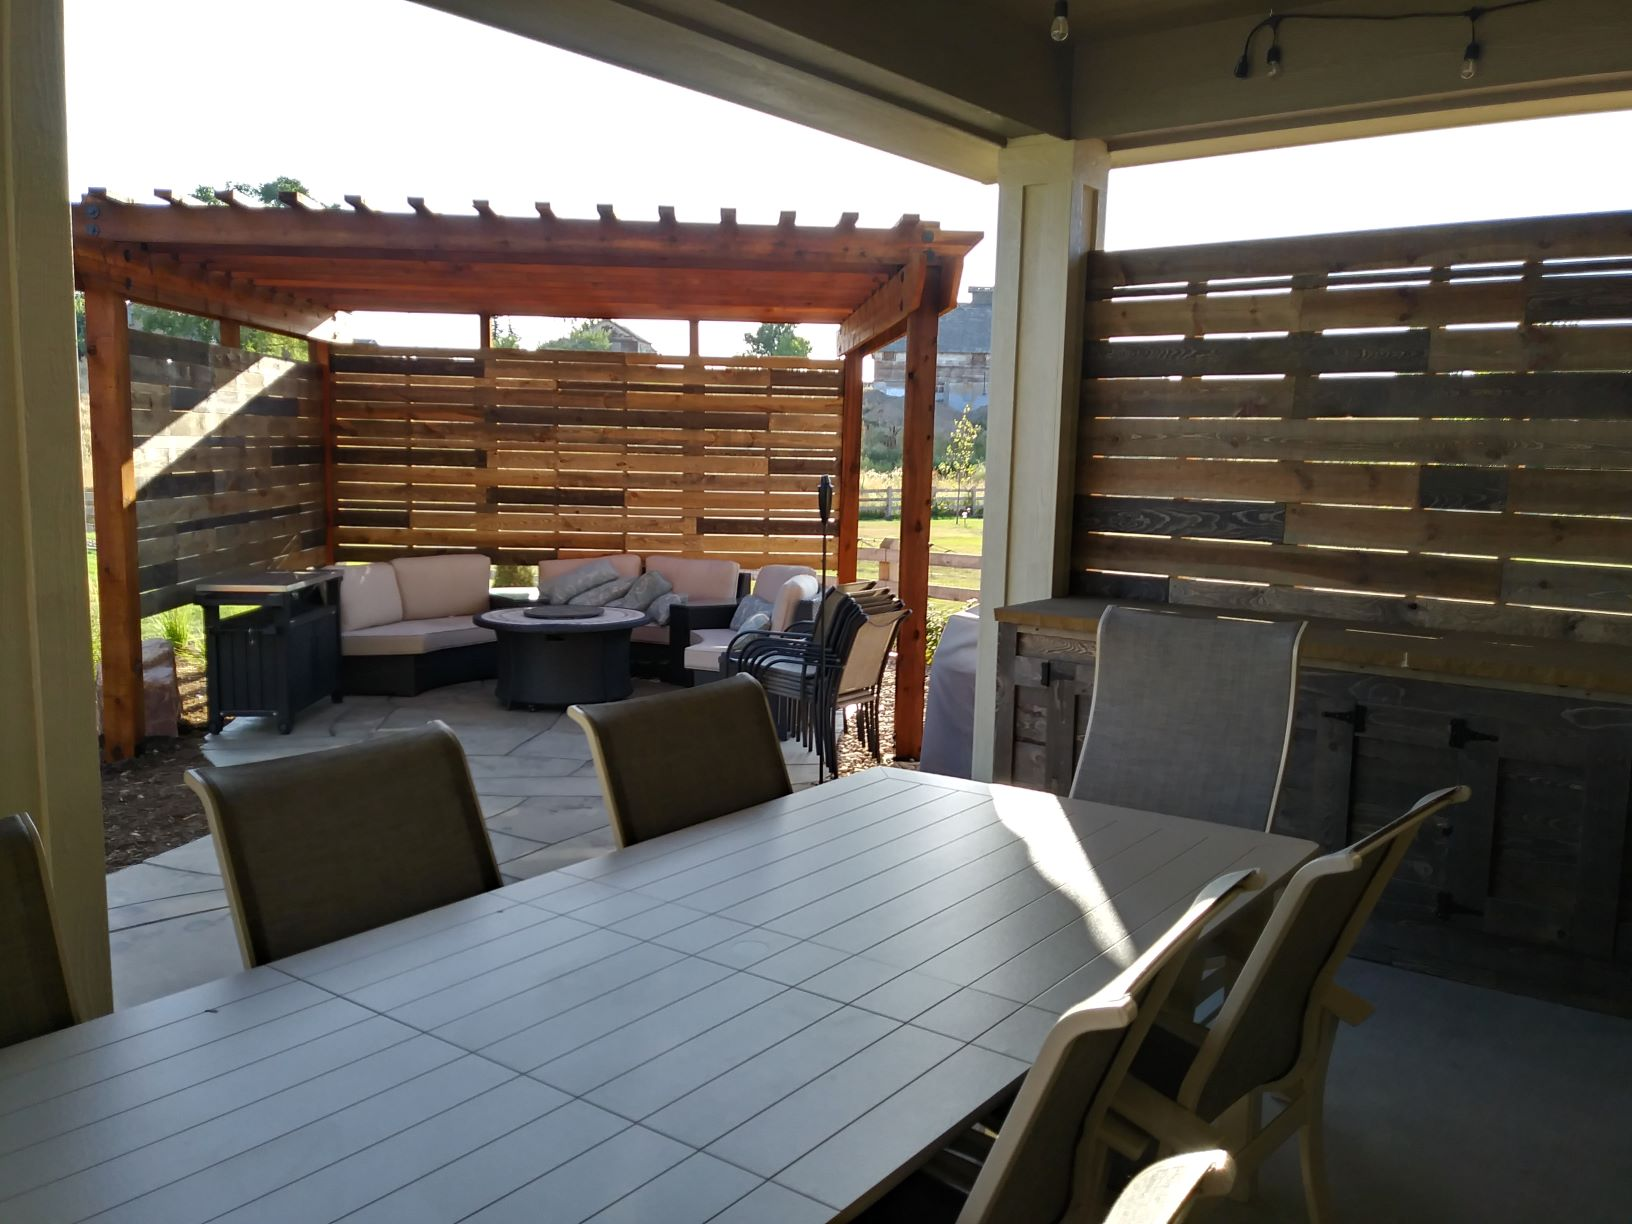 Pergola over flat stone patio with wall for privacy and wind control.